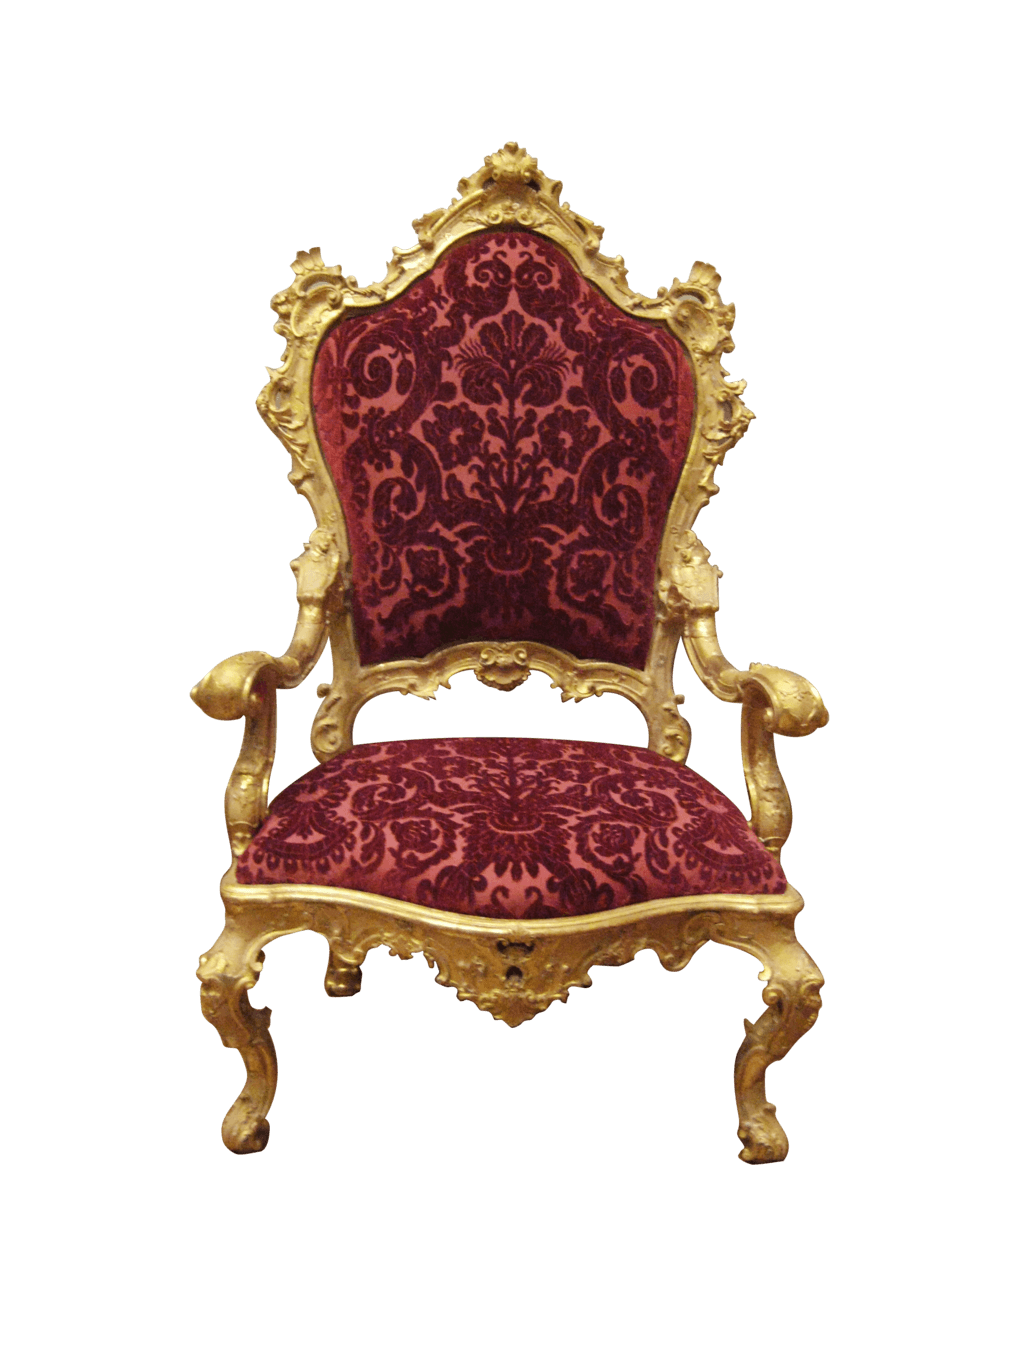 Couch clipart royal. Armchair transparent png stickpng